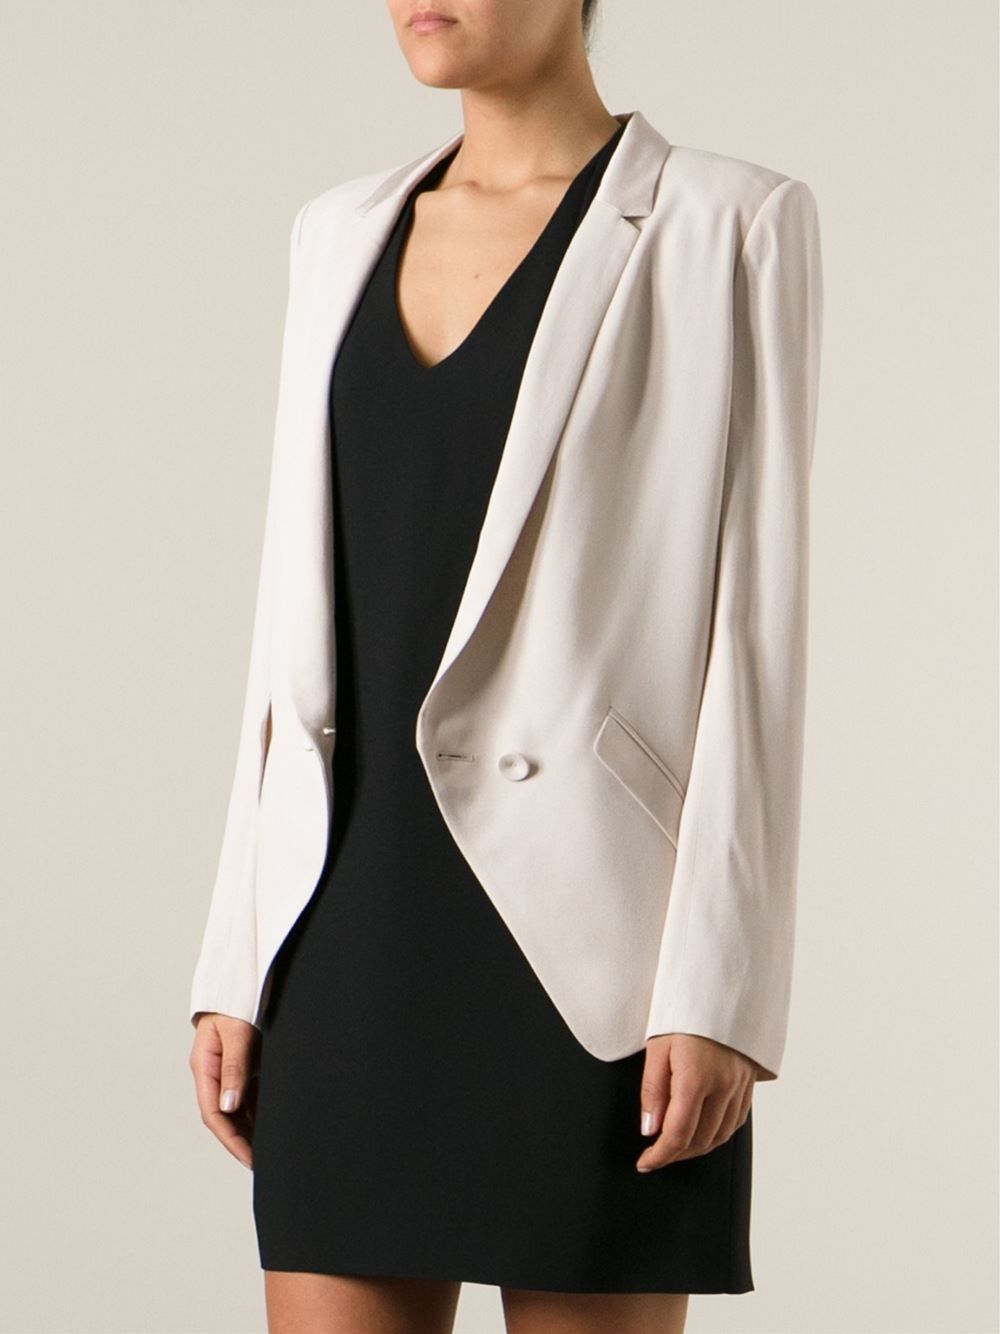 Vanessa Bruno Athé Double Breasted Jacket - Francis Ferent - Farfetch.com